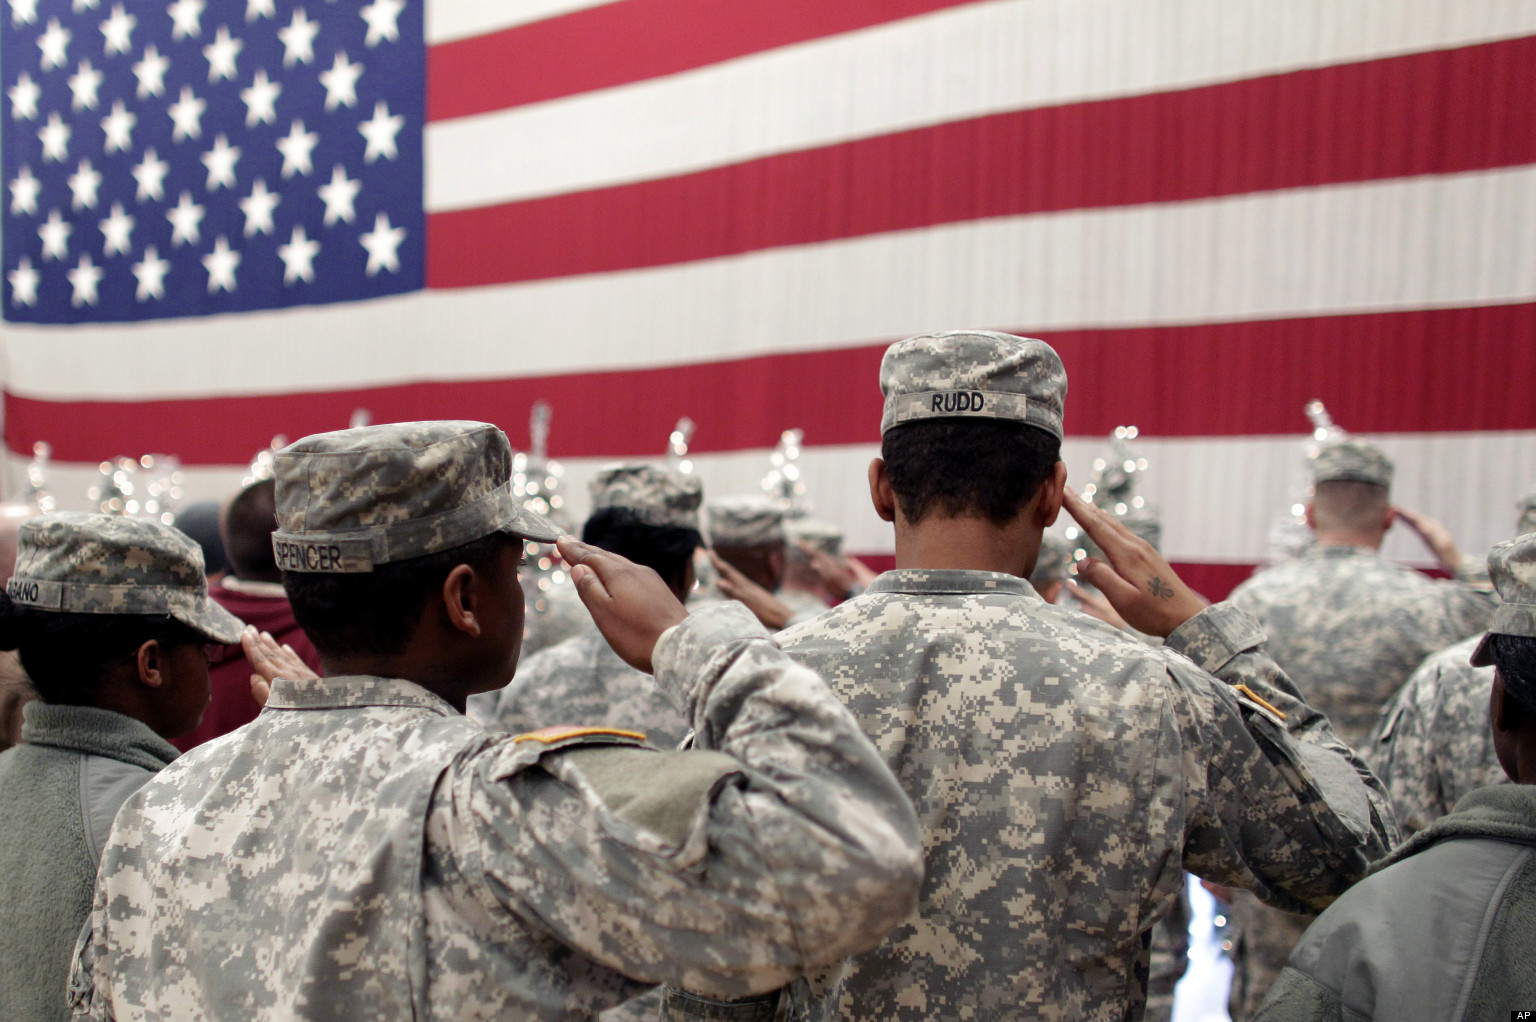 The vast divide between America and its military